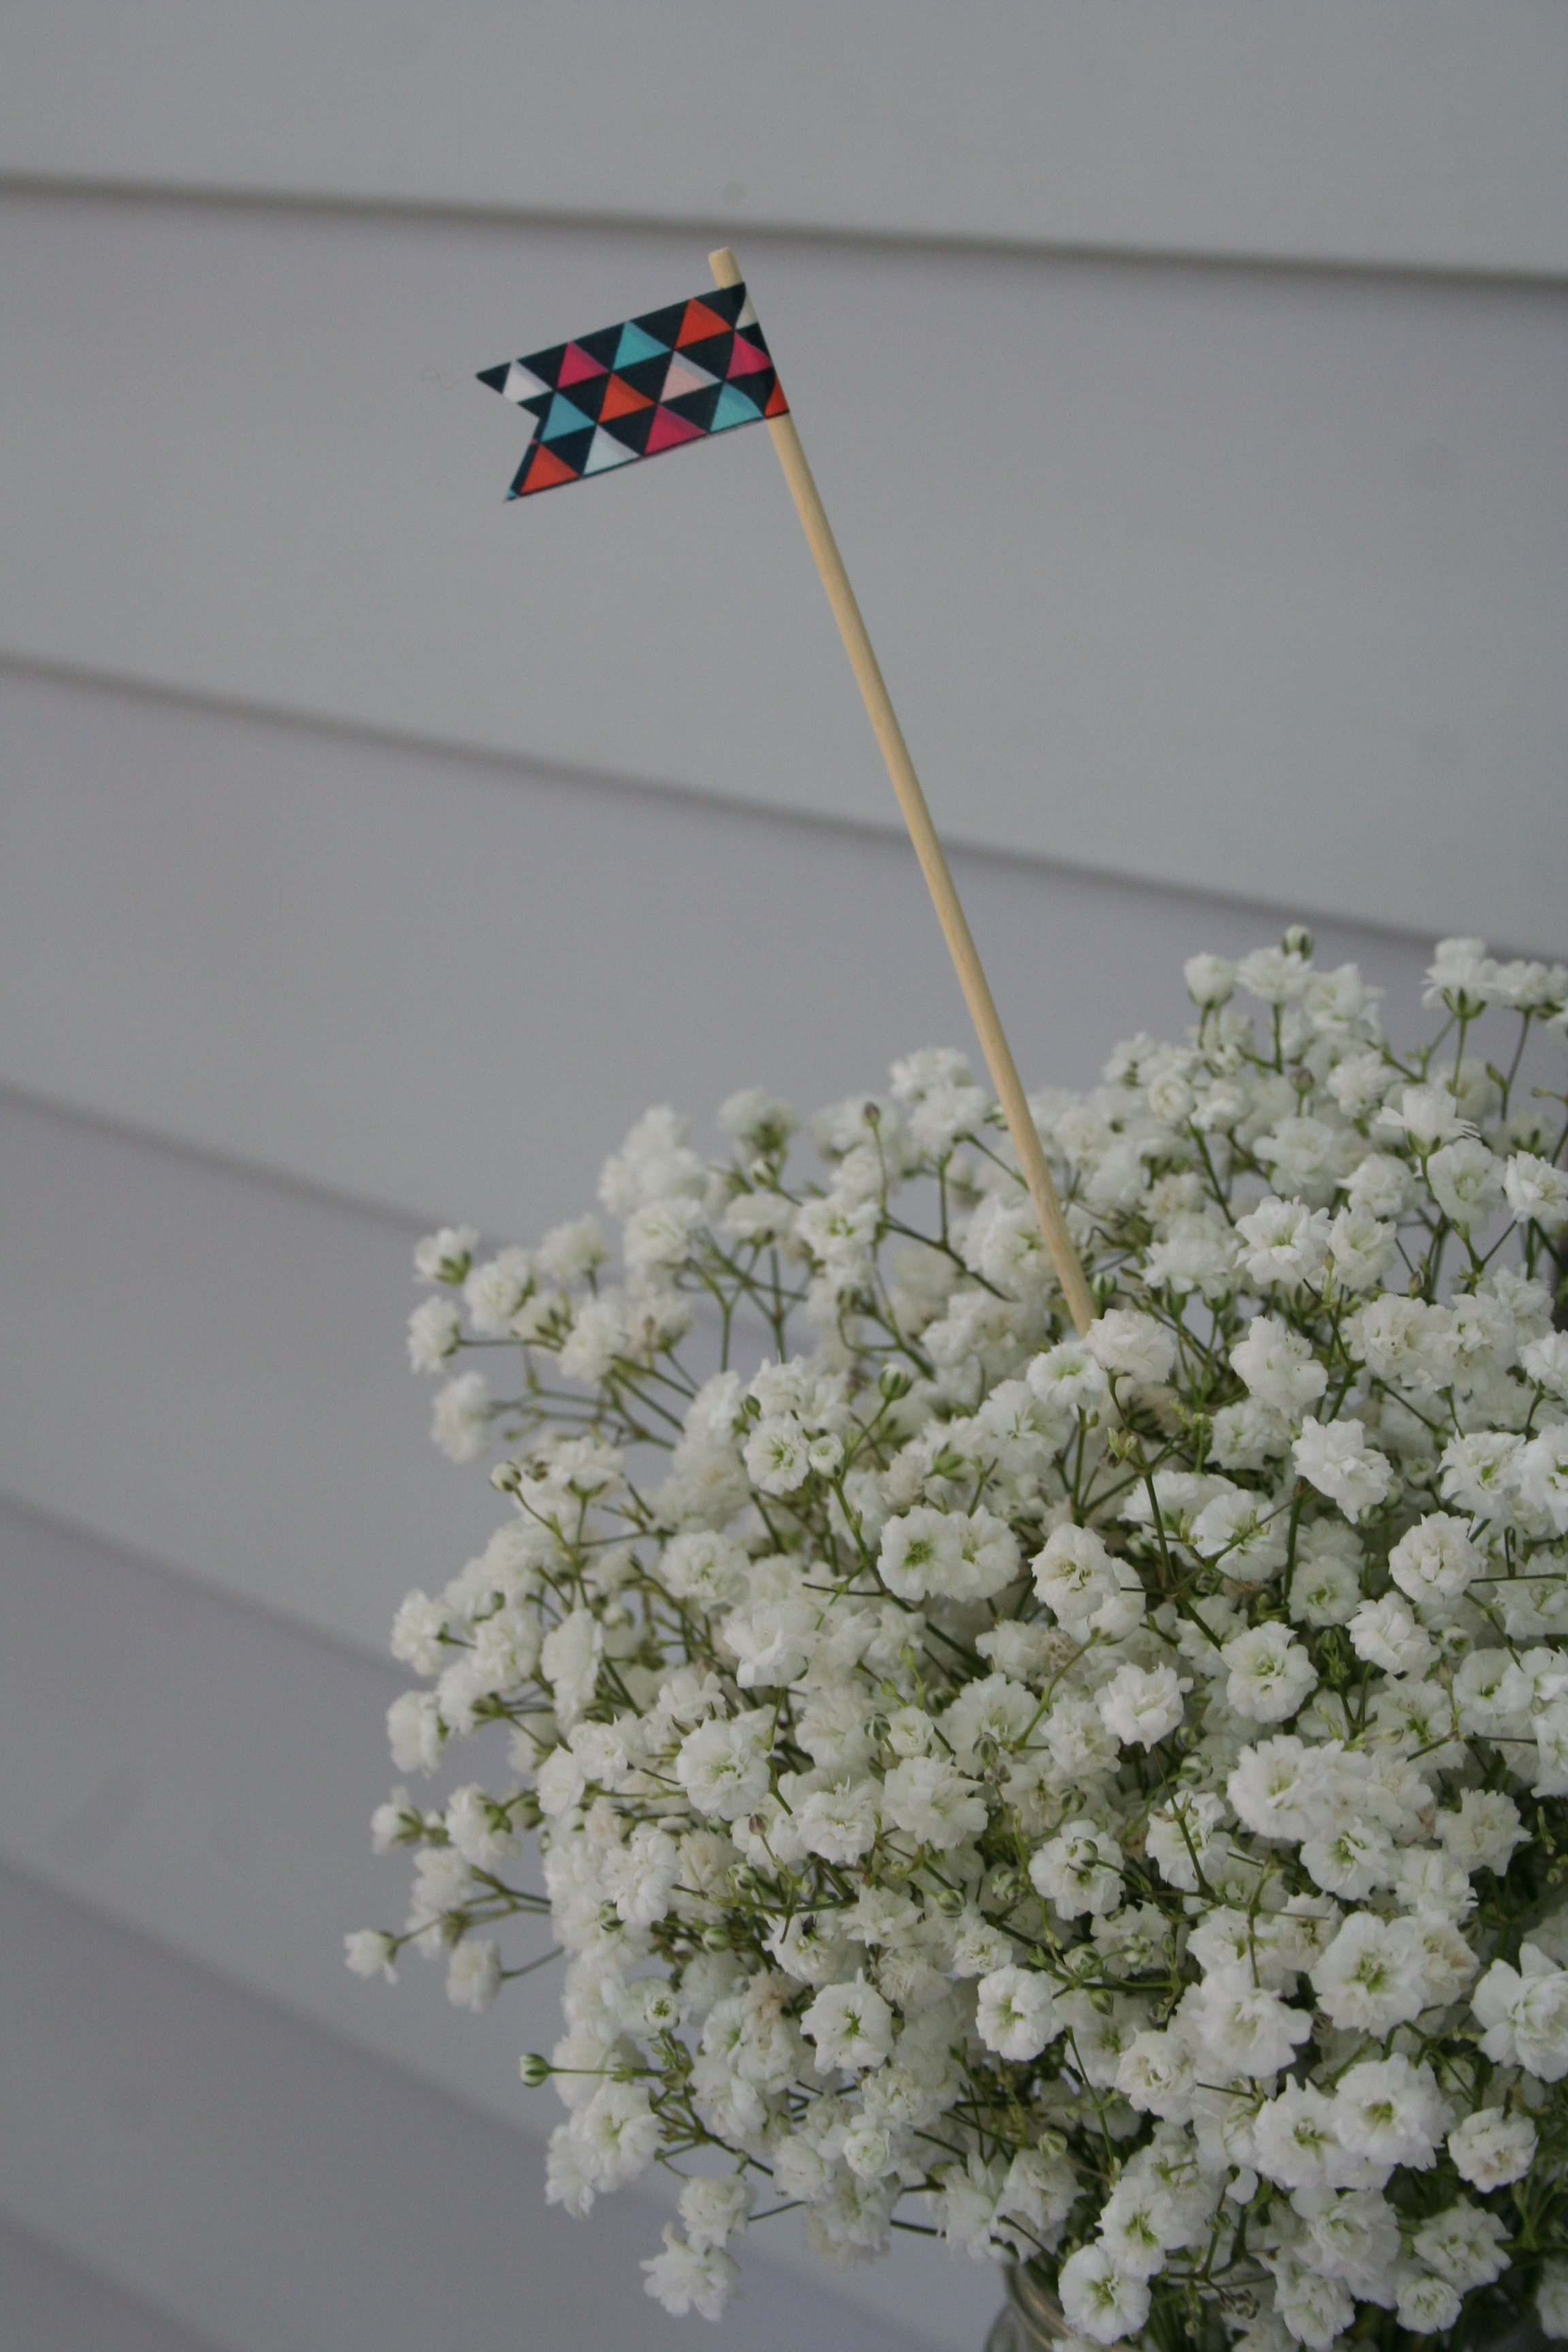 Flag decor for floral centerpieces made with washi tape and skewer stick | thelovelylauralife.com